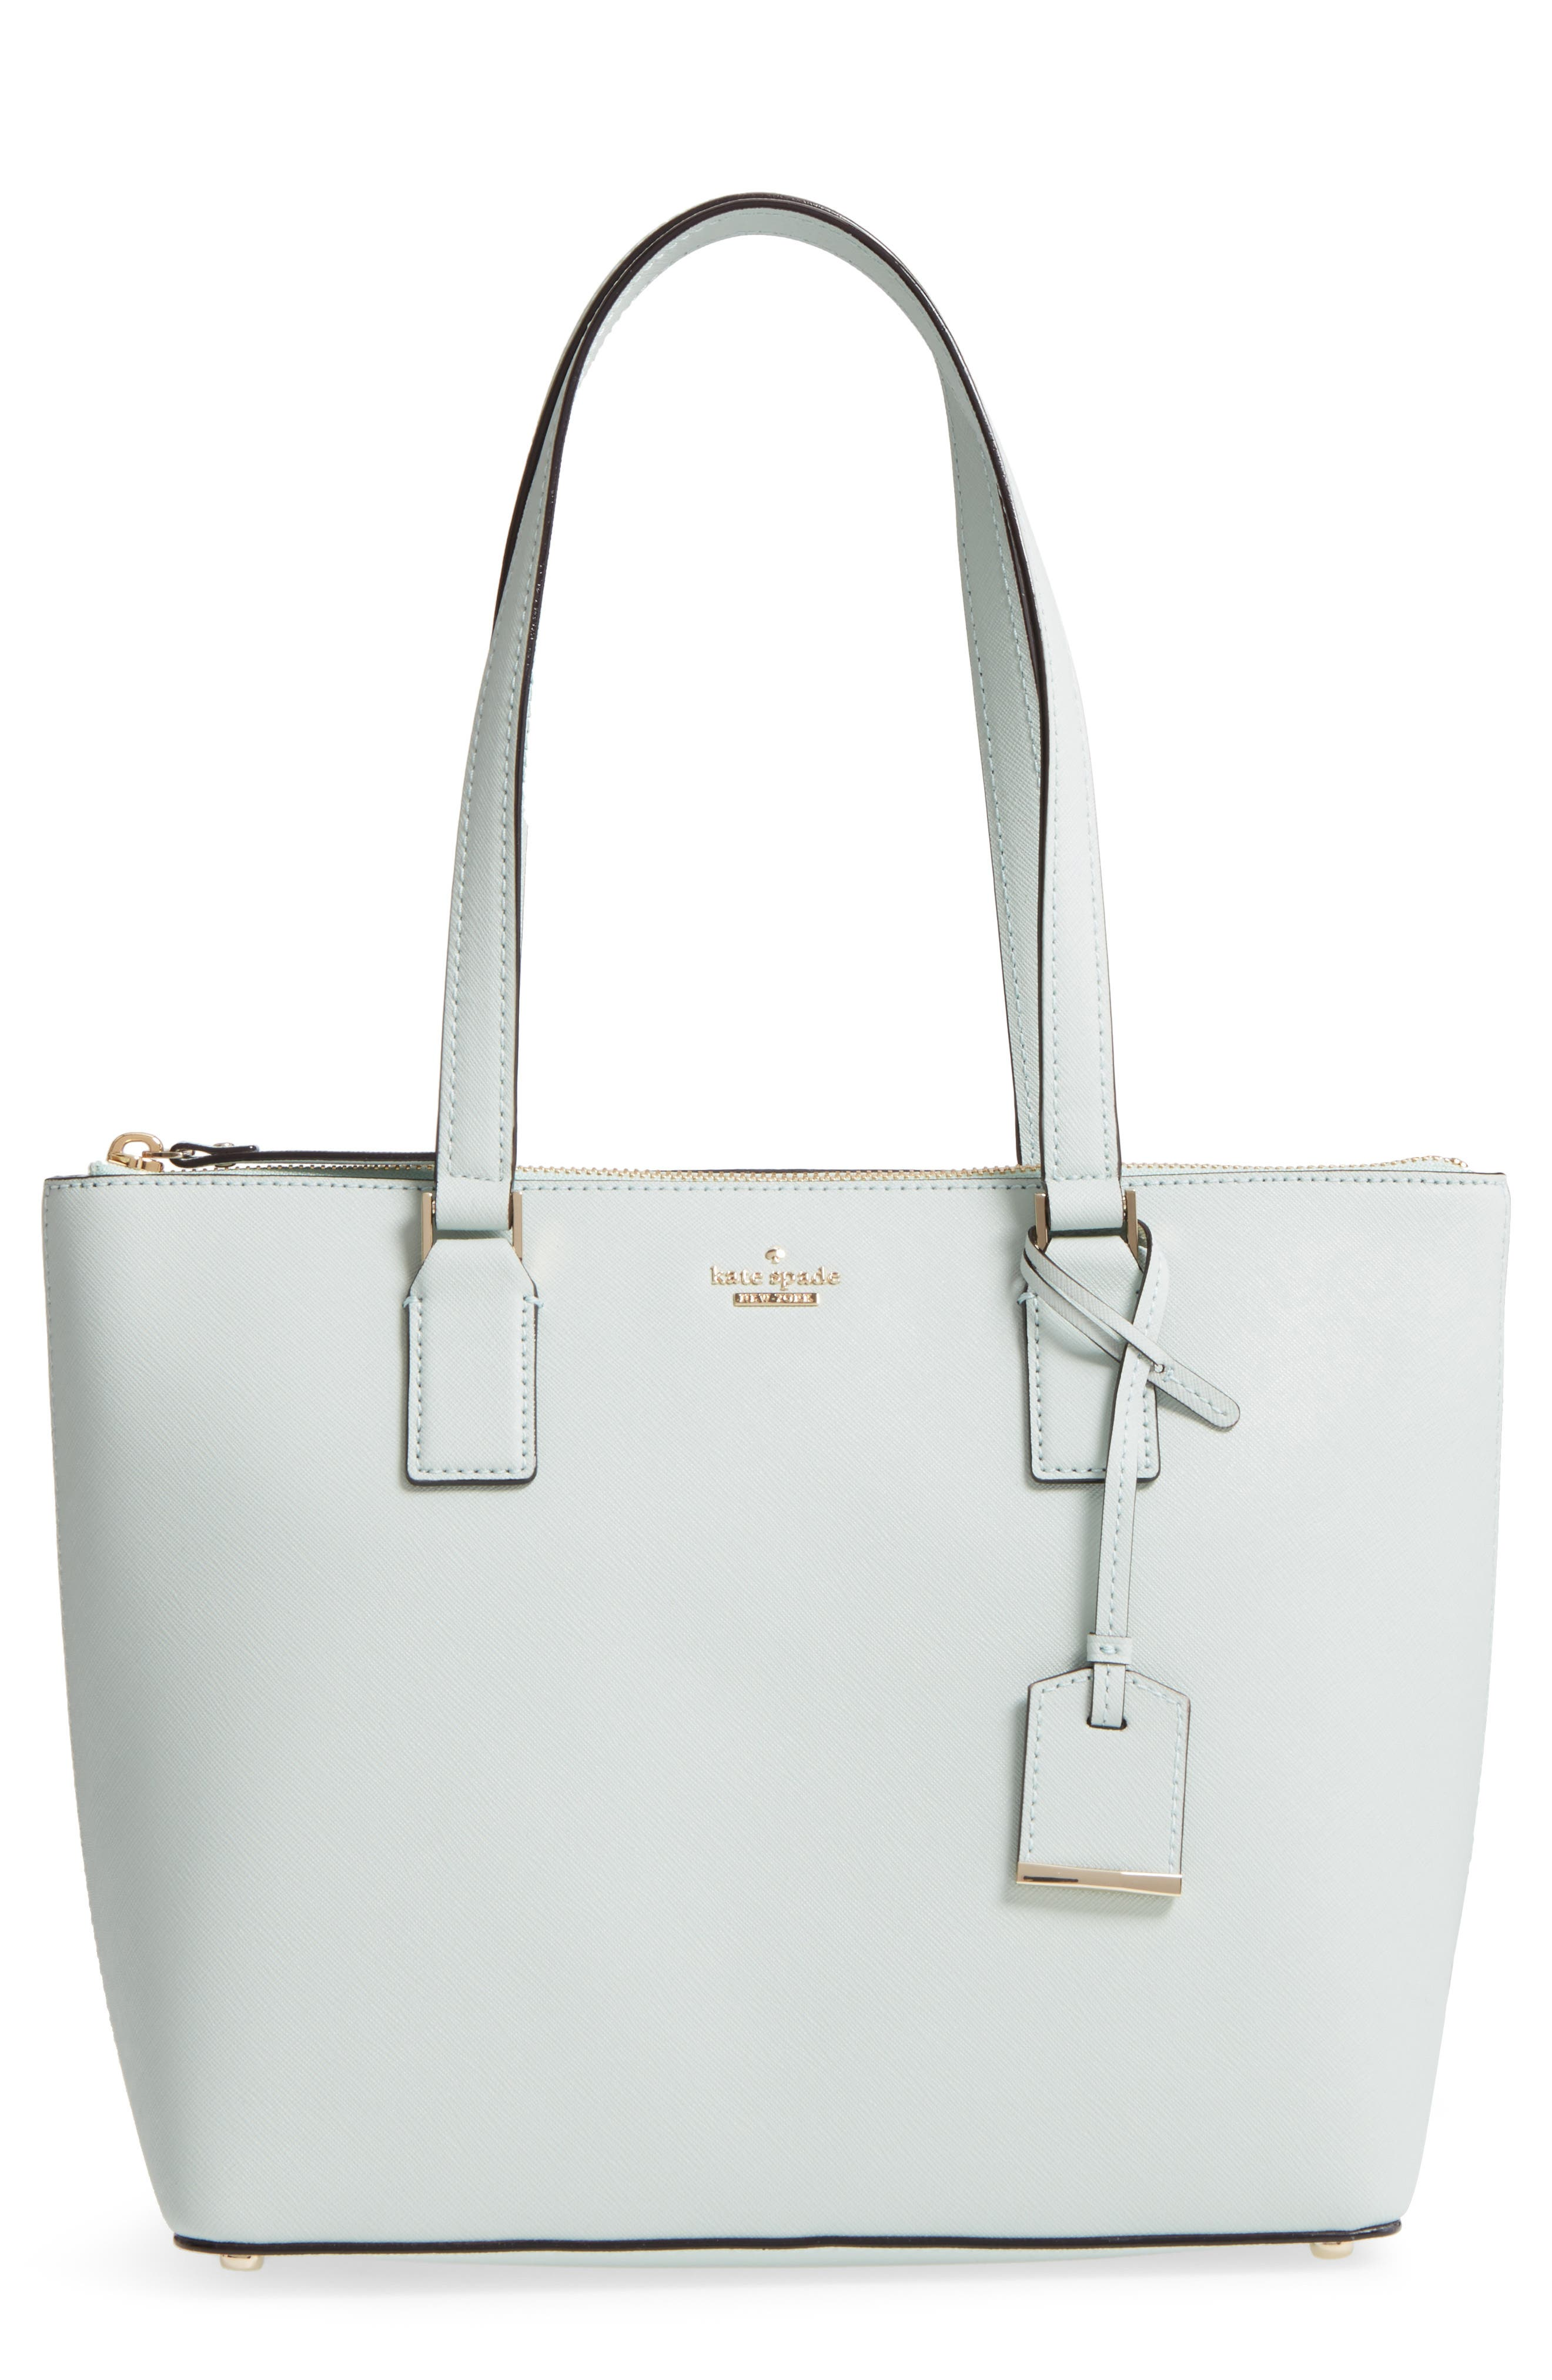 cameron street - small lucie leather tote,                         Main,                         color, Misty Mint